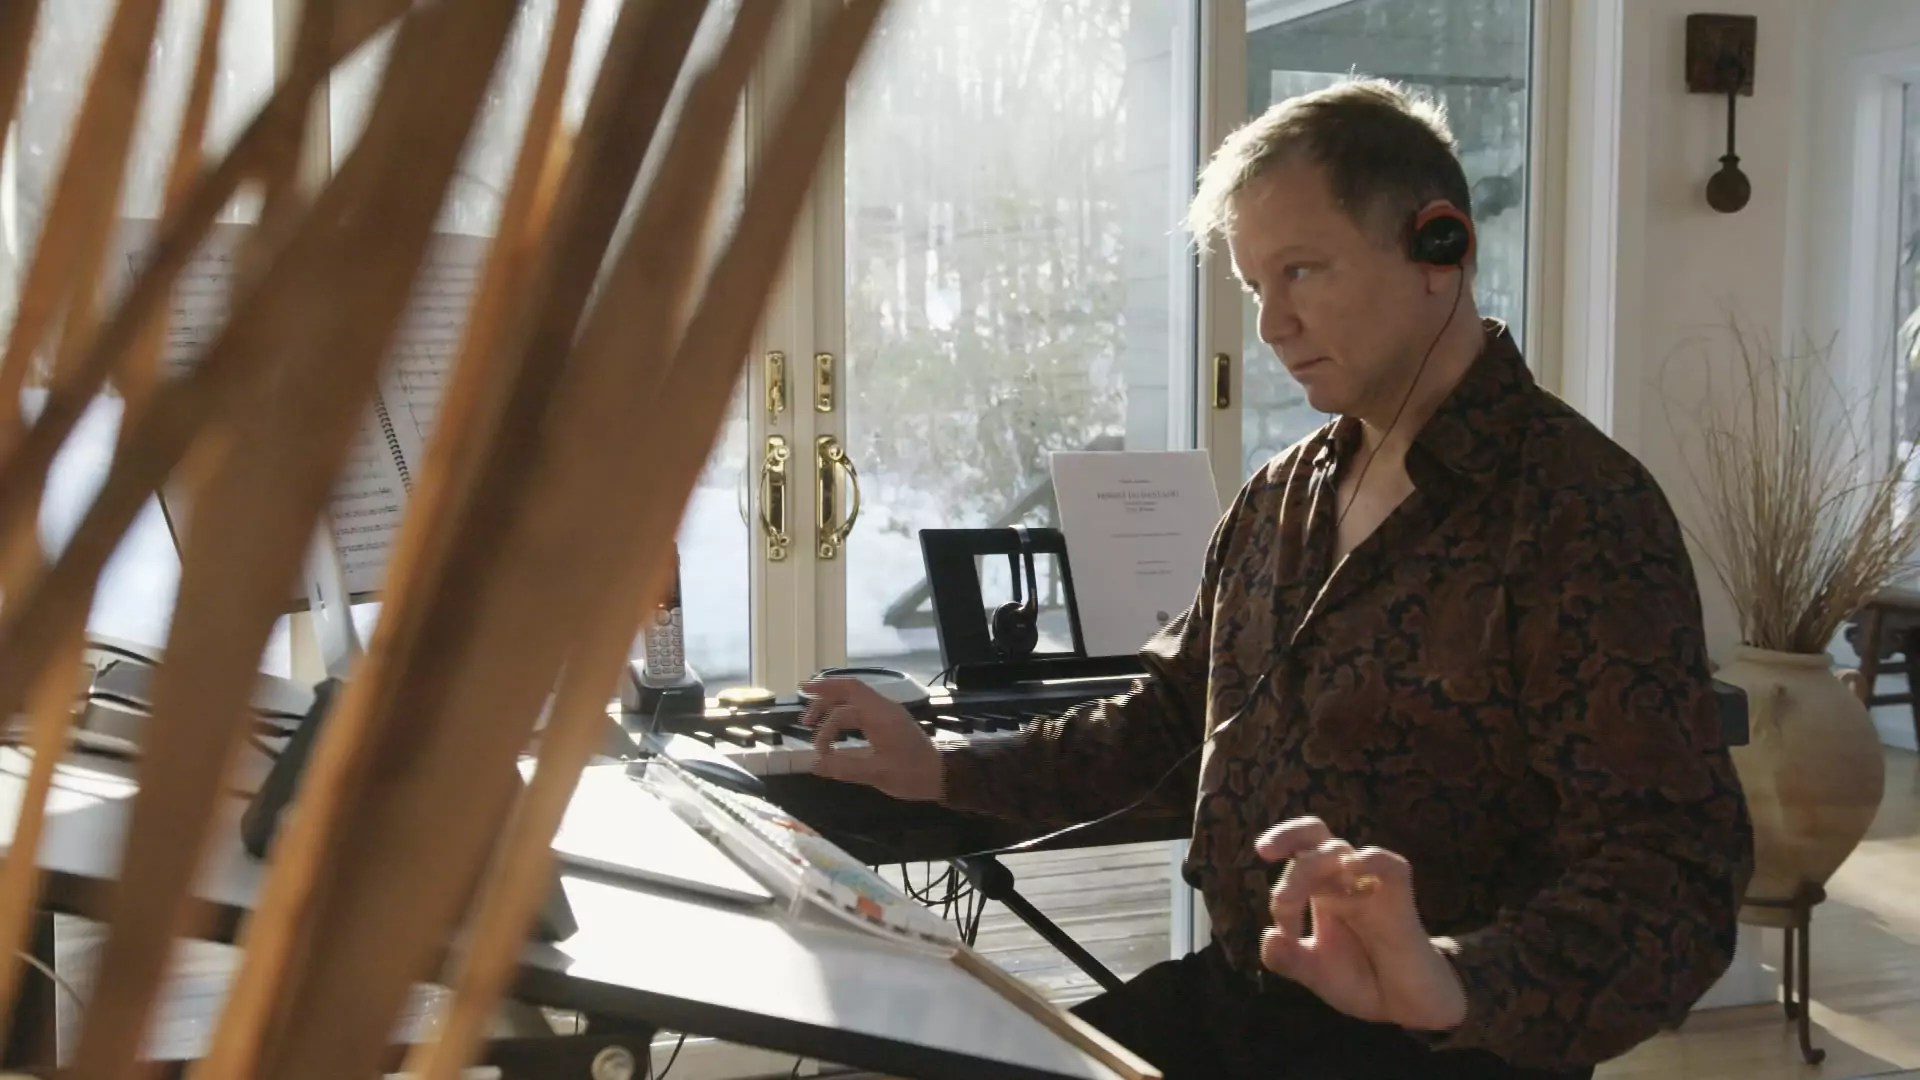 A man sits at a desk composing and listening to music.